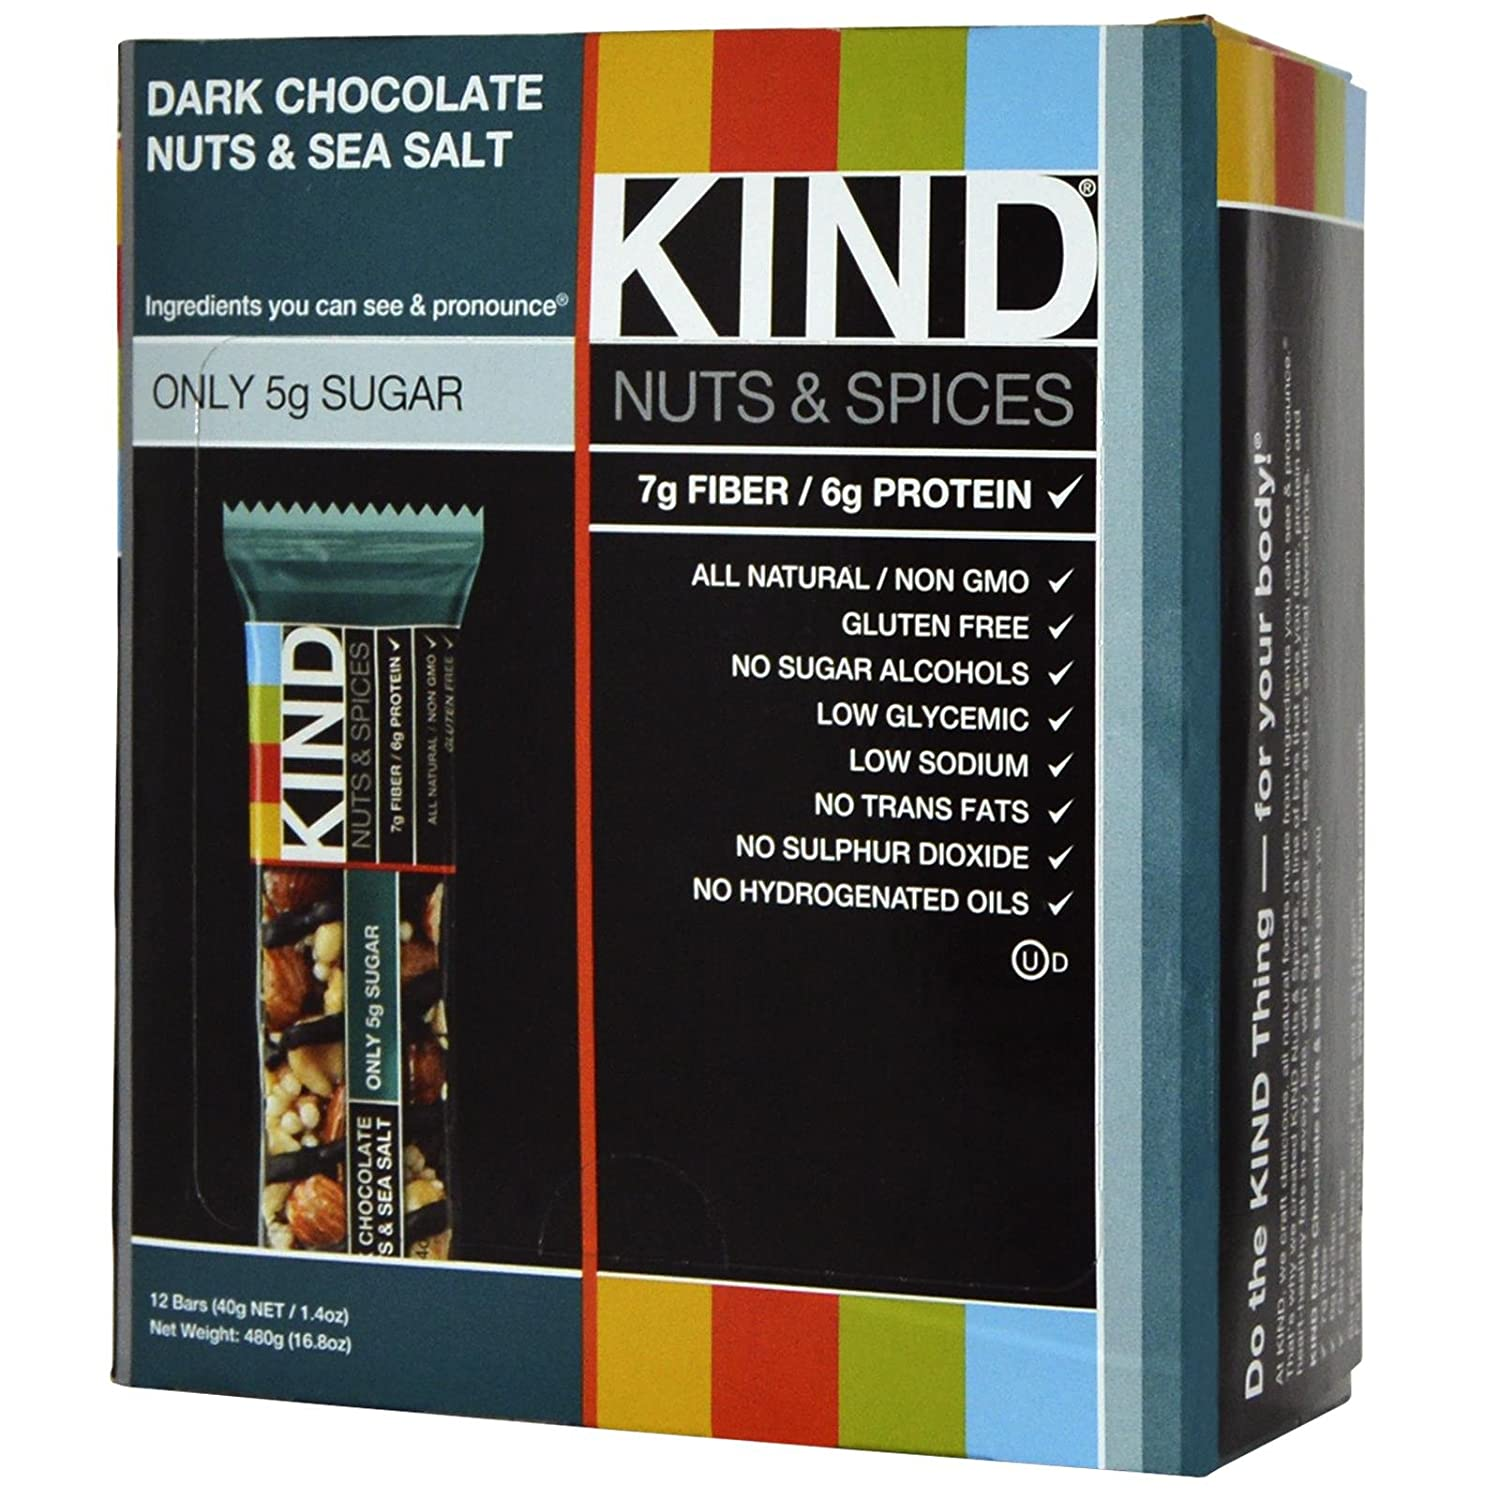 Kind Dk Choc/Seasalt 1.4oz Bar - Box of 12